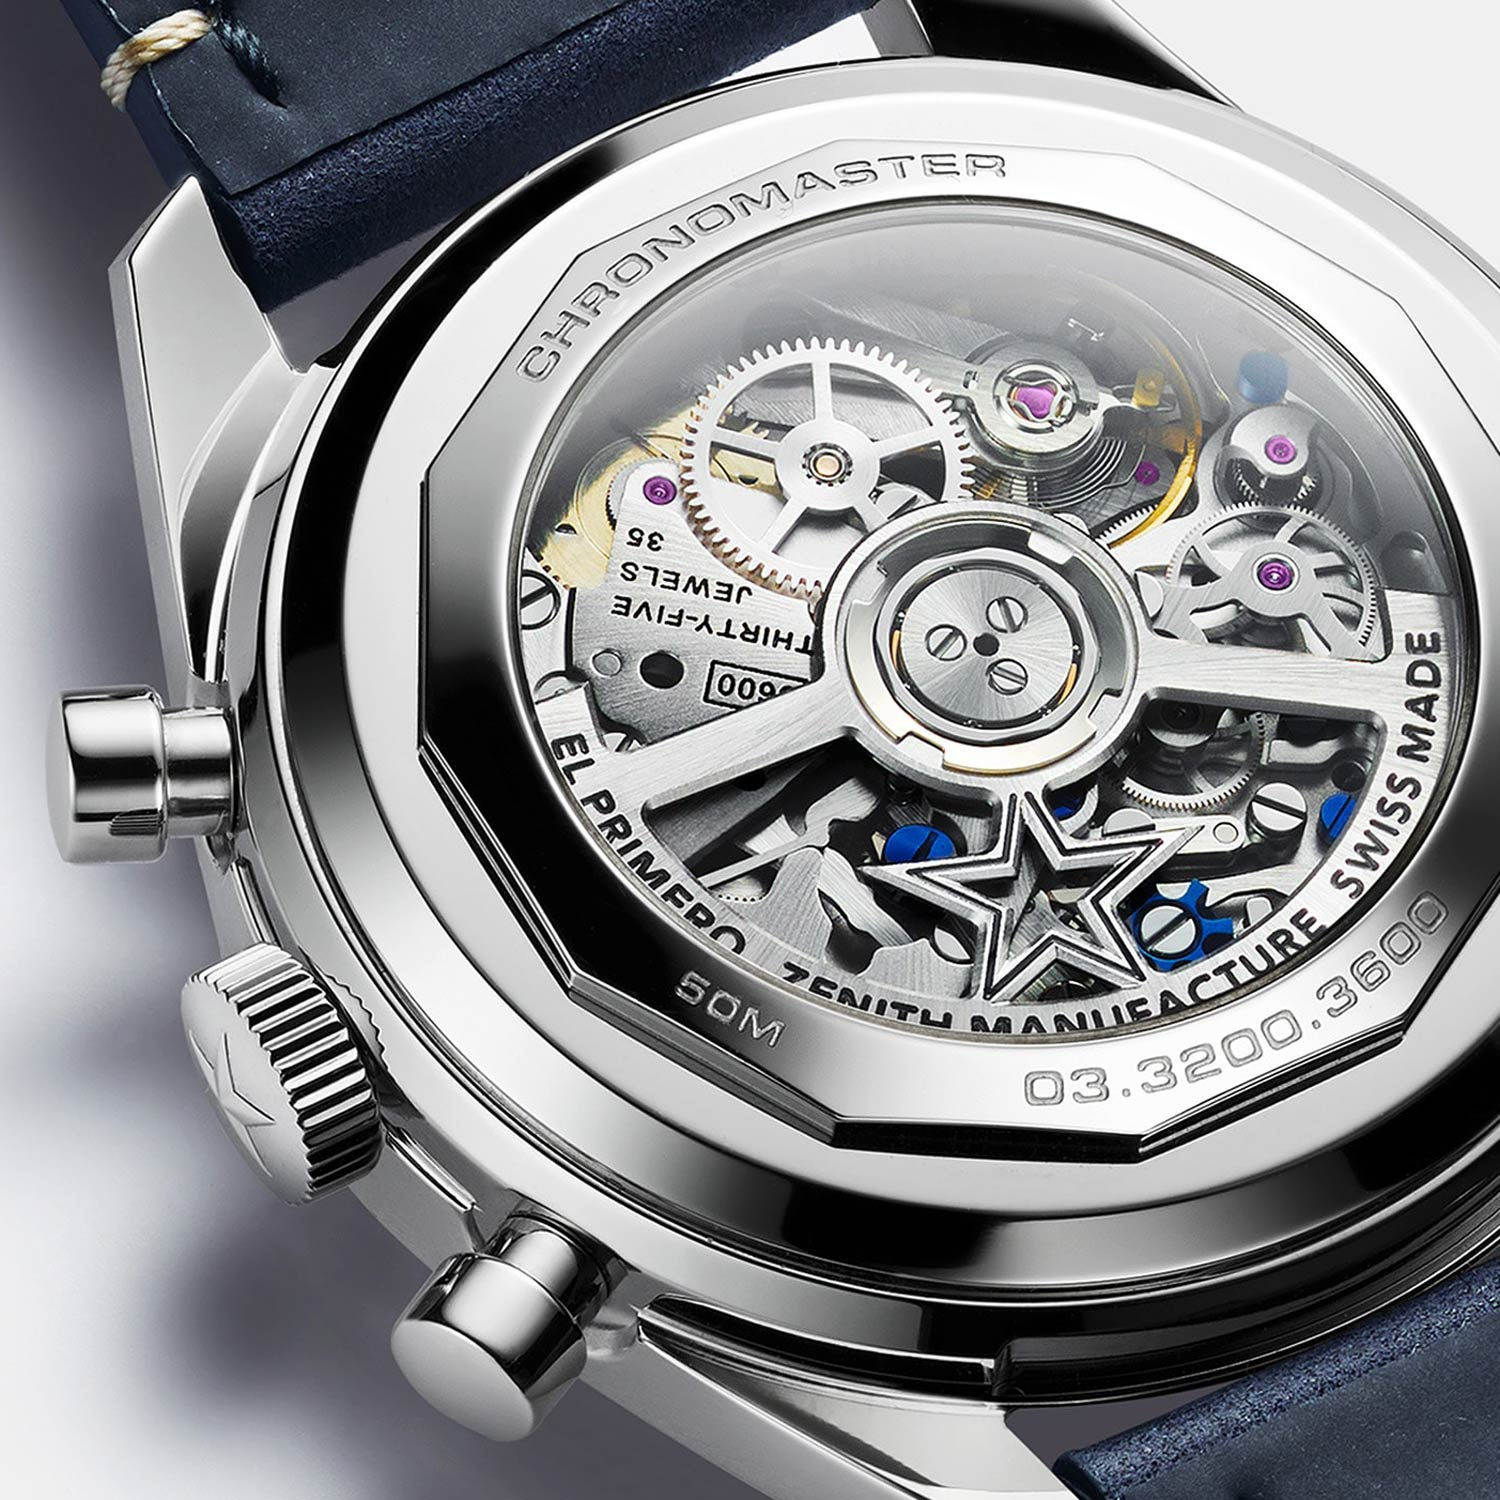 The only departure from the original A386 is the caseback, which is see-through for this version.